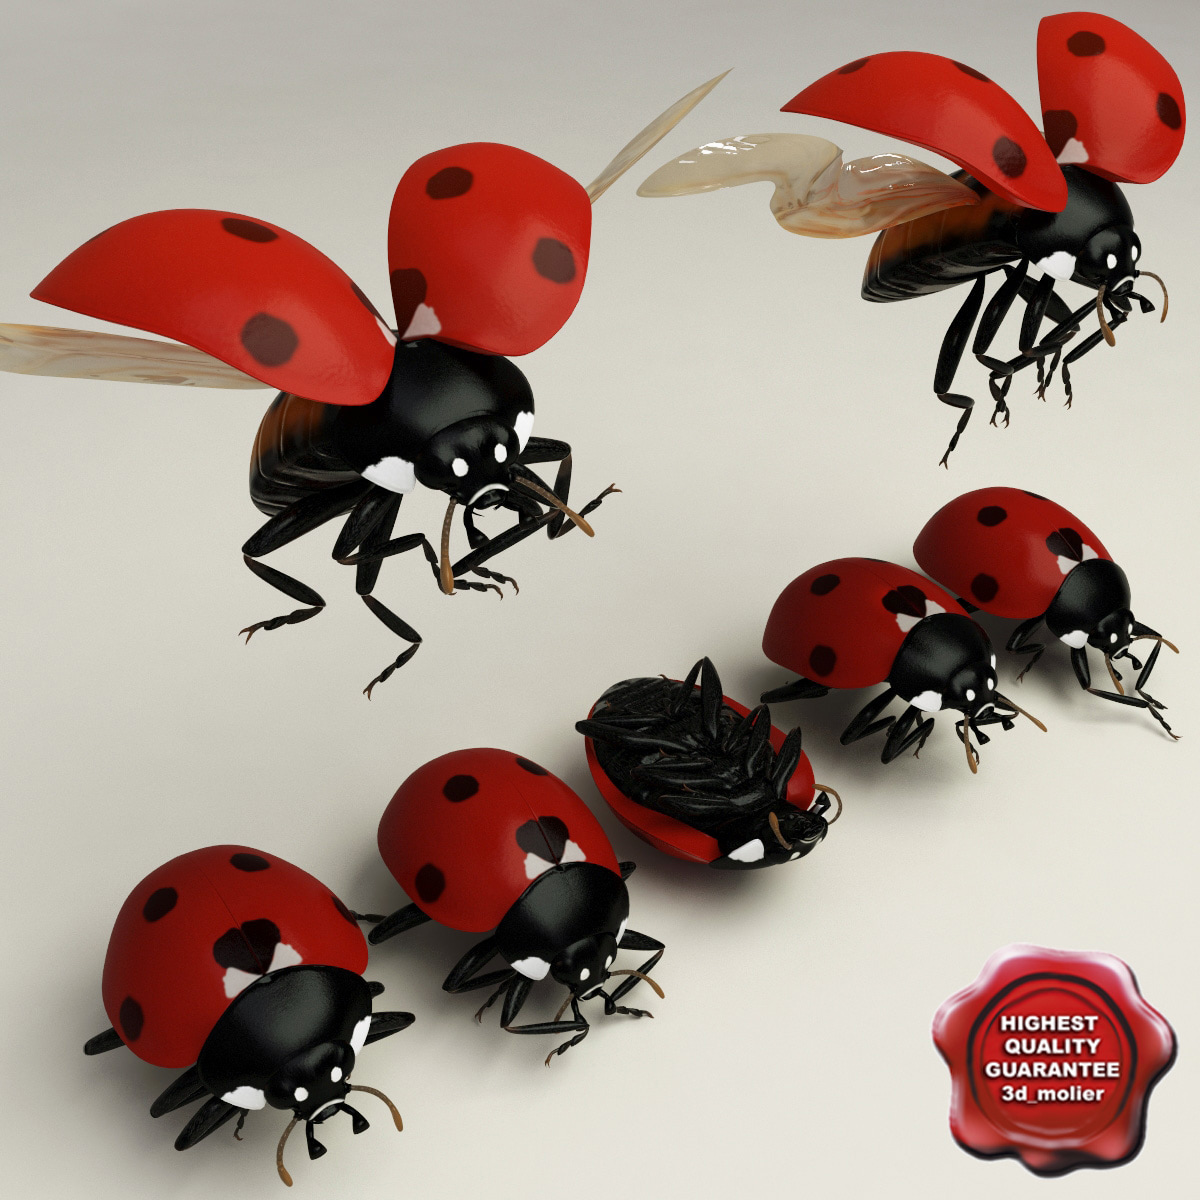 Ladybug_Poses_Collection_00.jpg